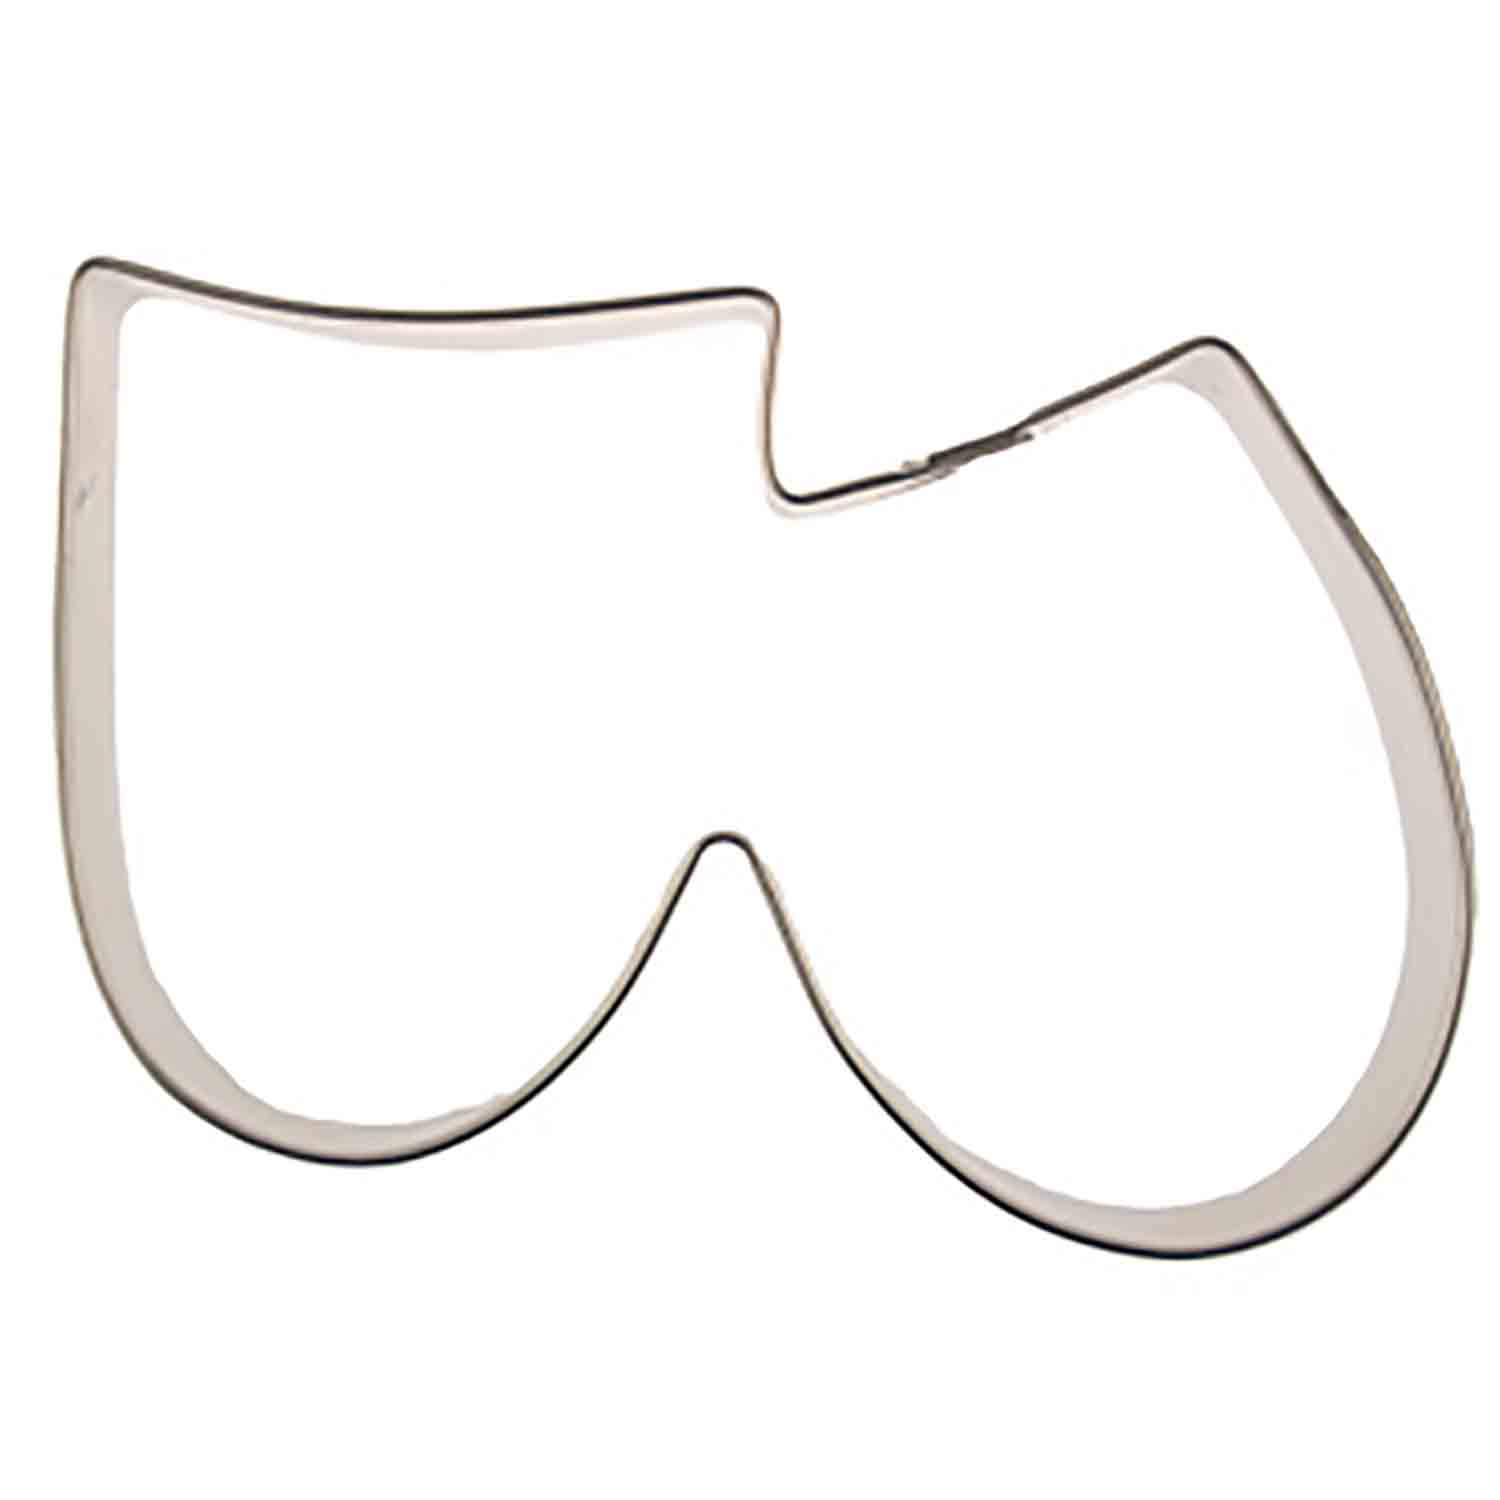 Comedy/Tragedy Cookie Cutter